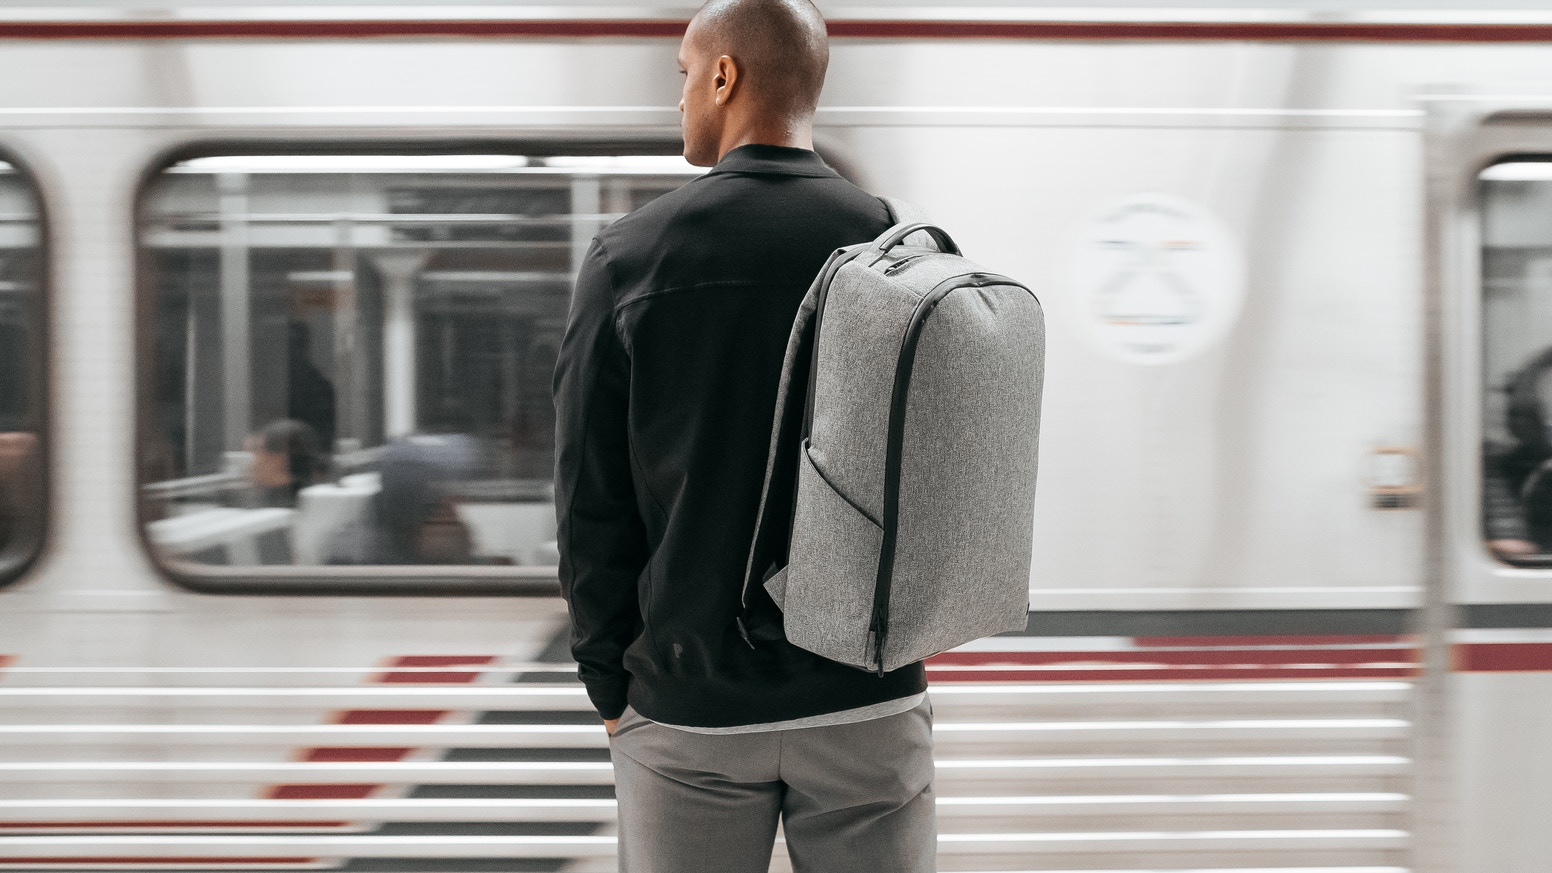 The ultimate backpack for work, working out, and travel.